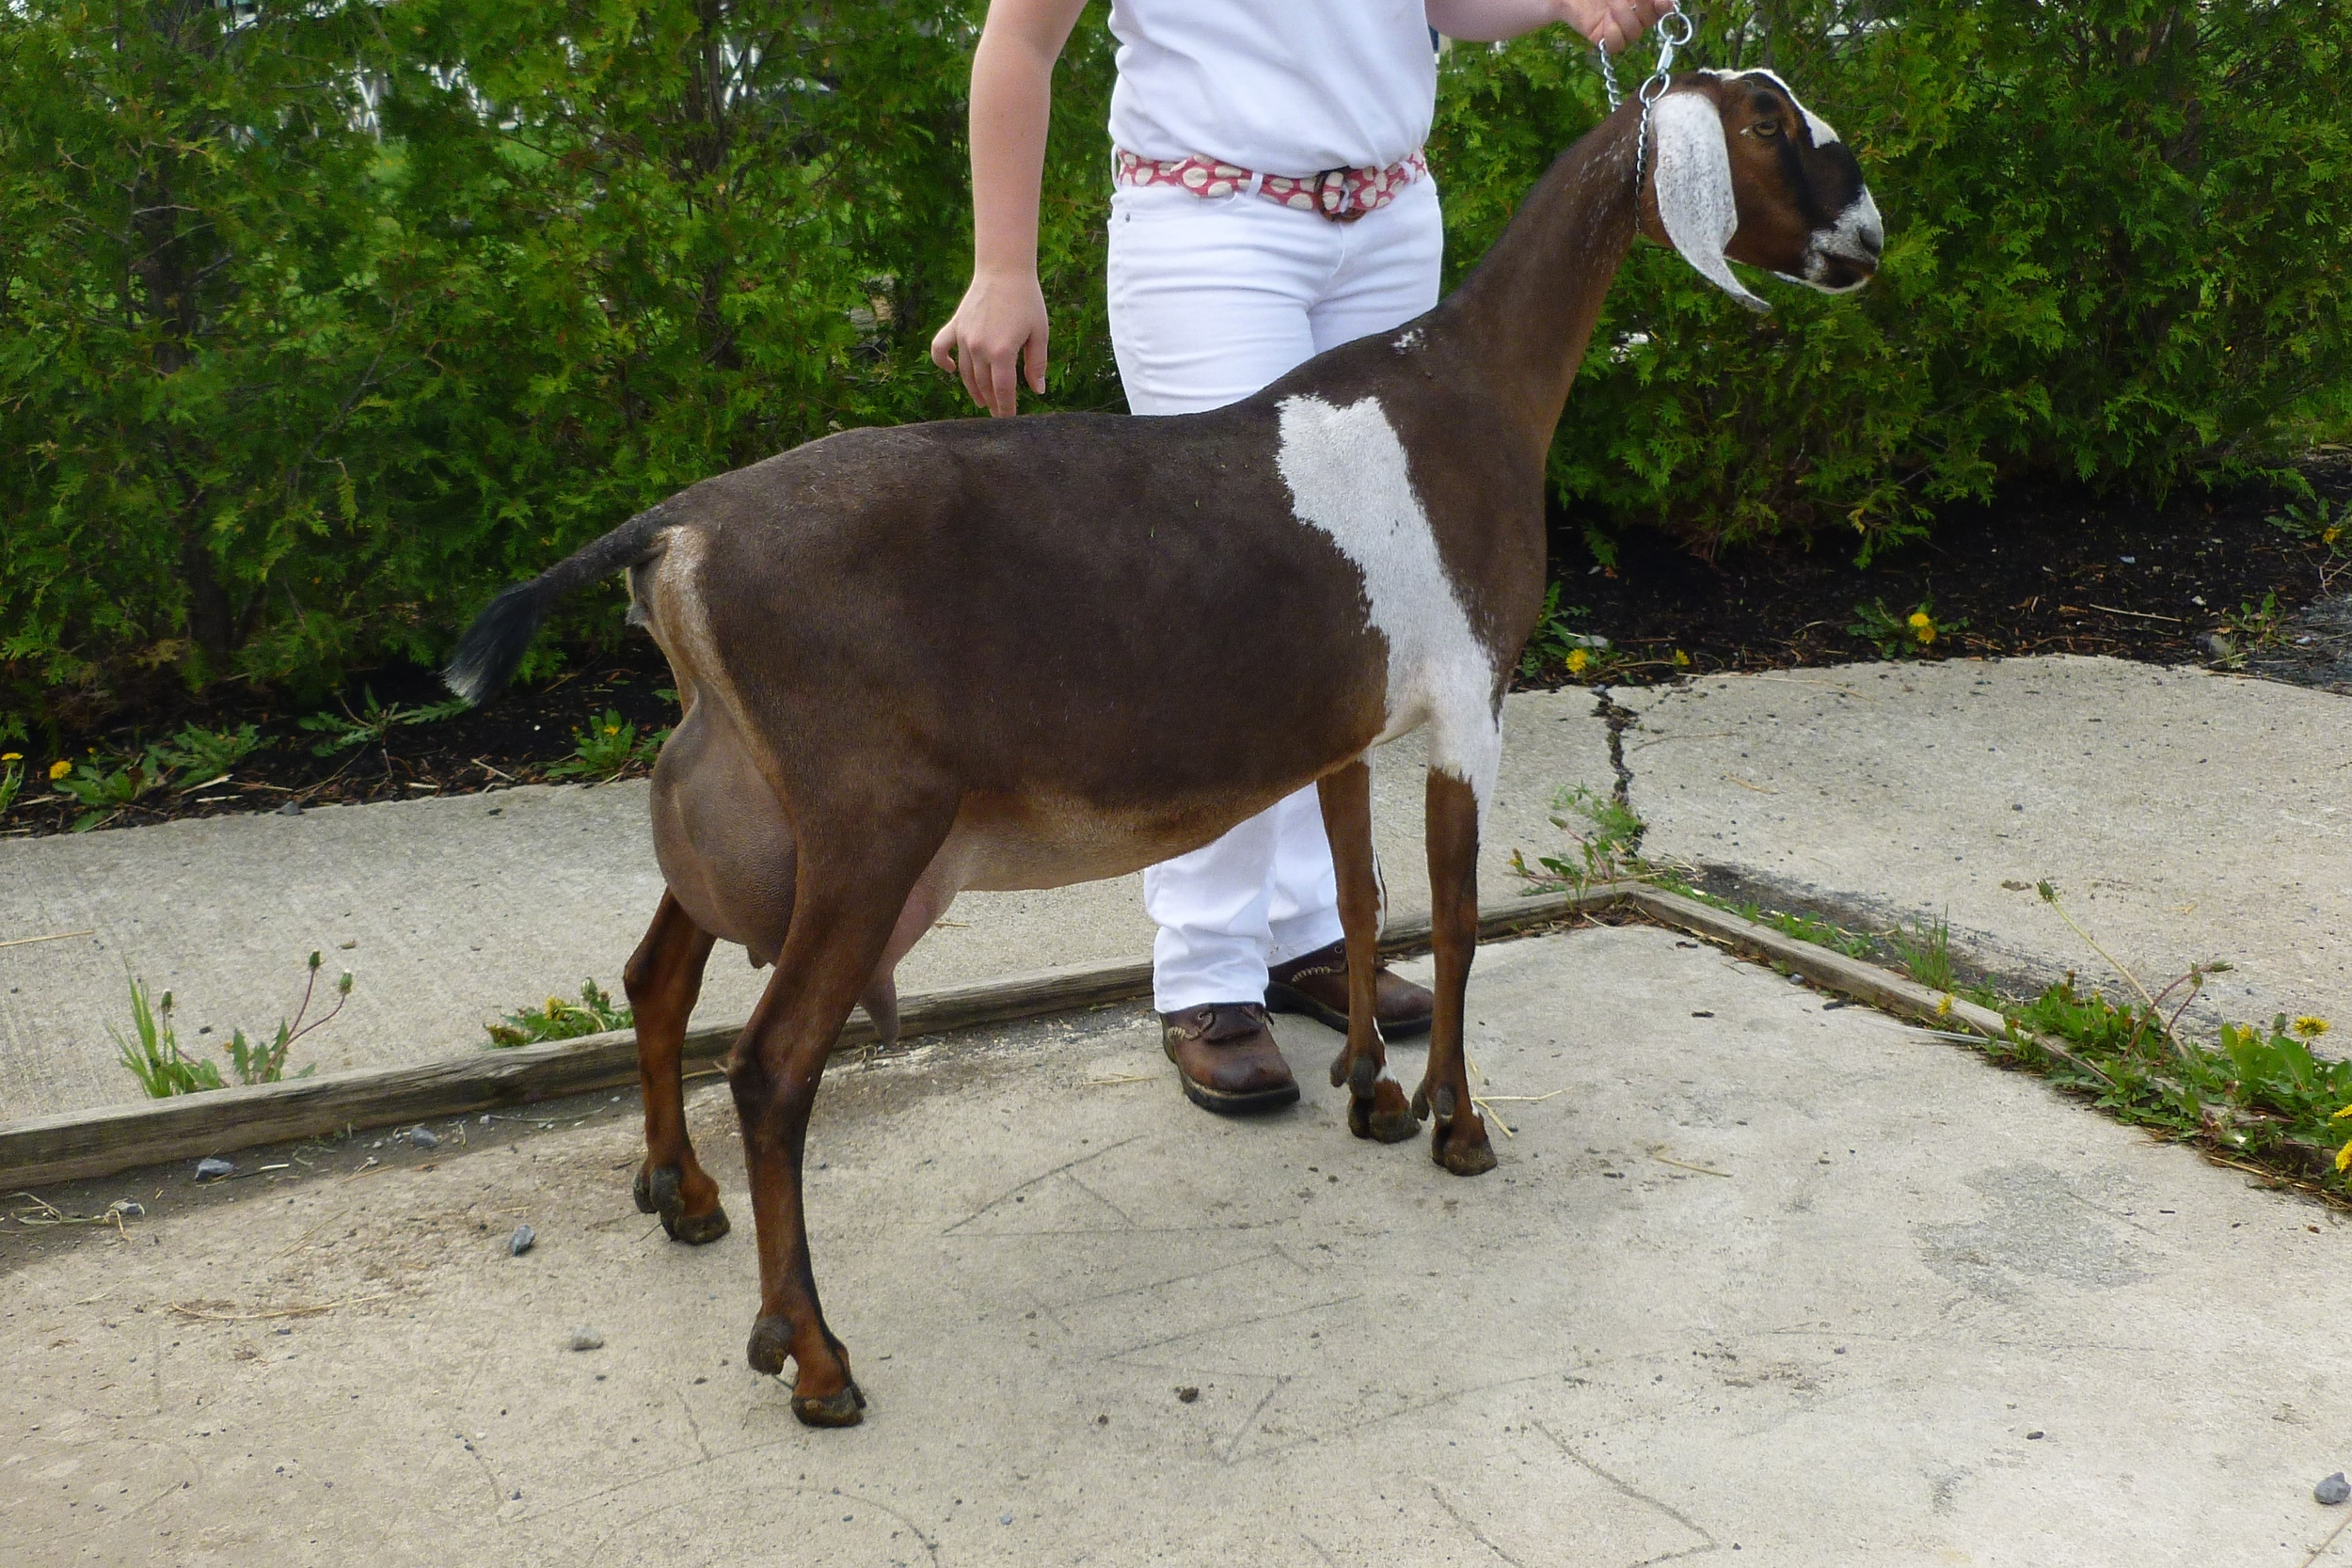 Daughter: King's Rock Pipin' Hot 2*M (3 years old, 2nd freshener)